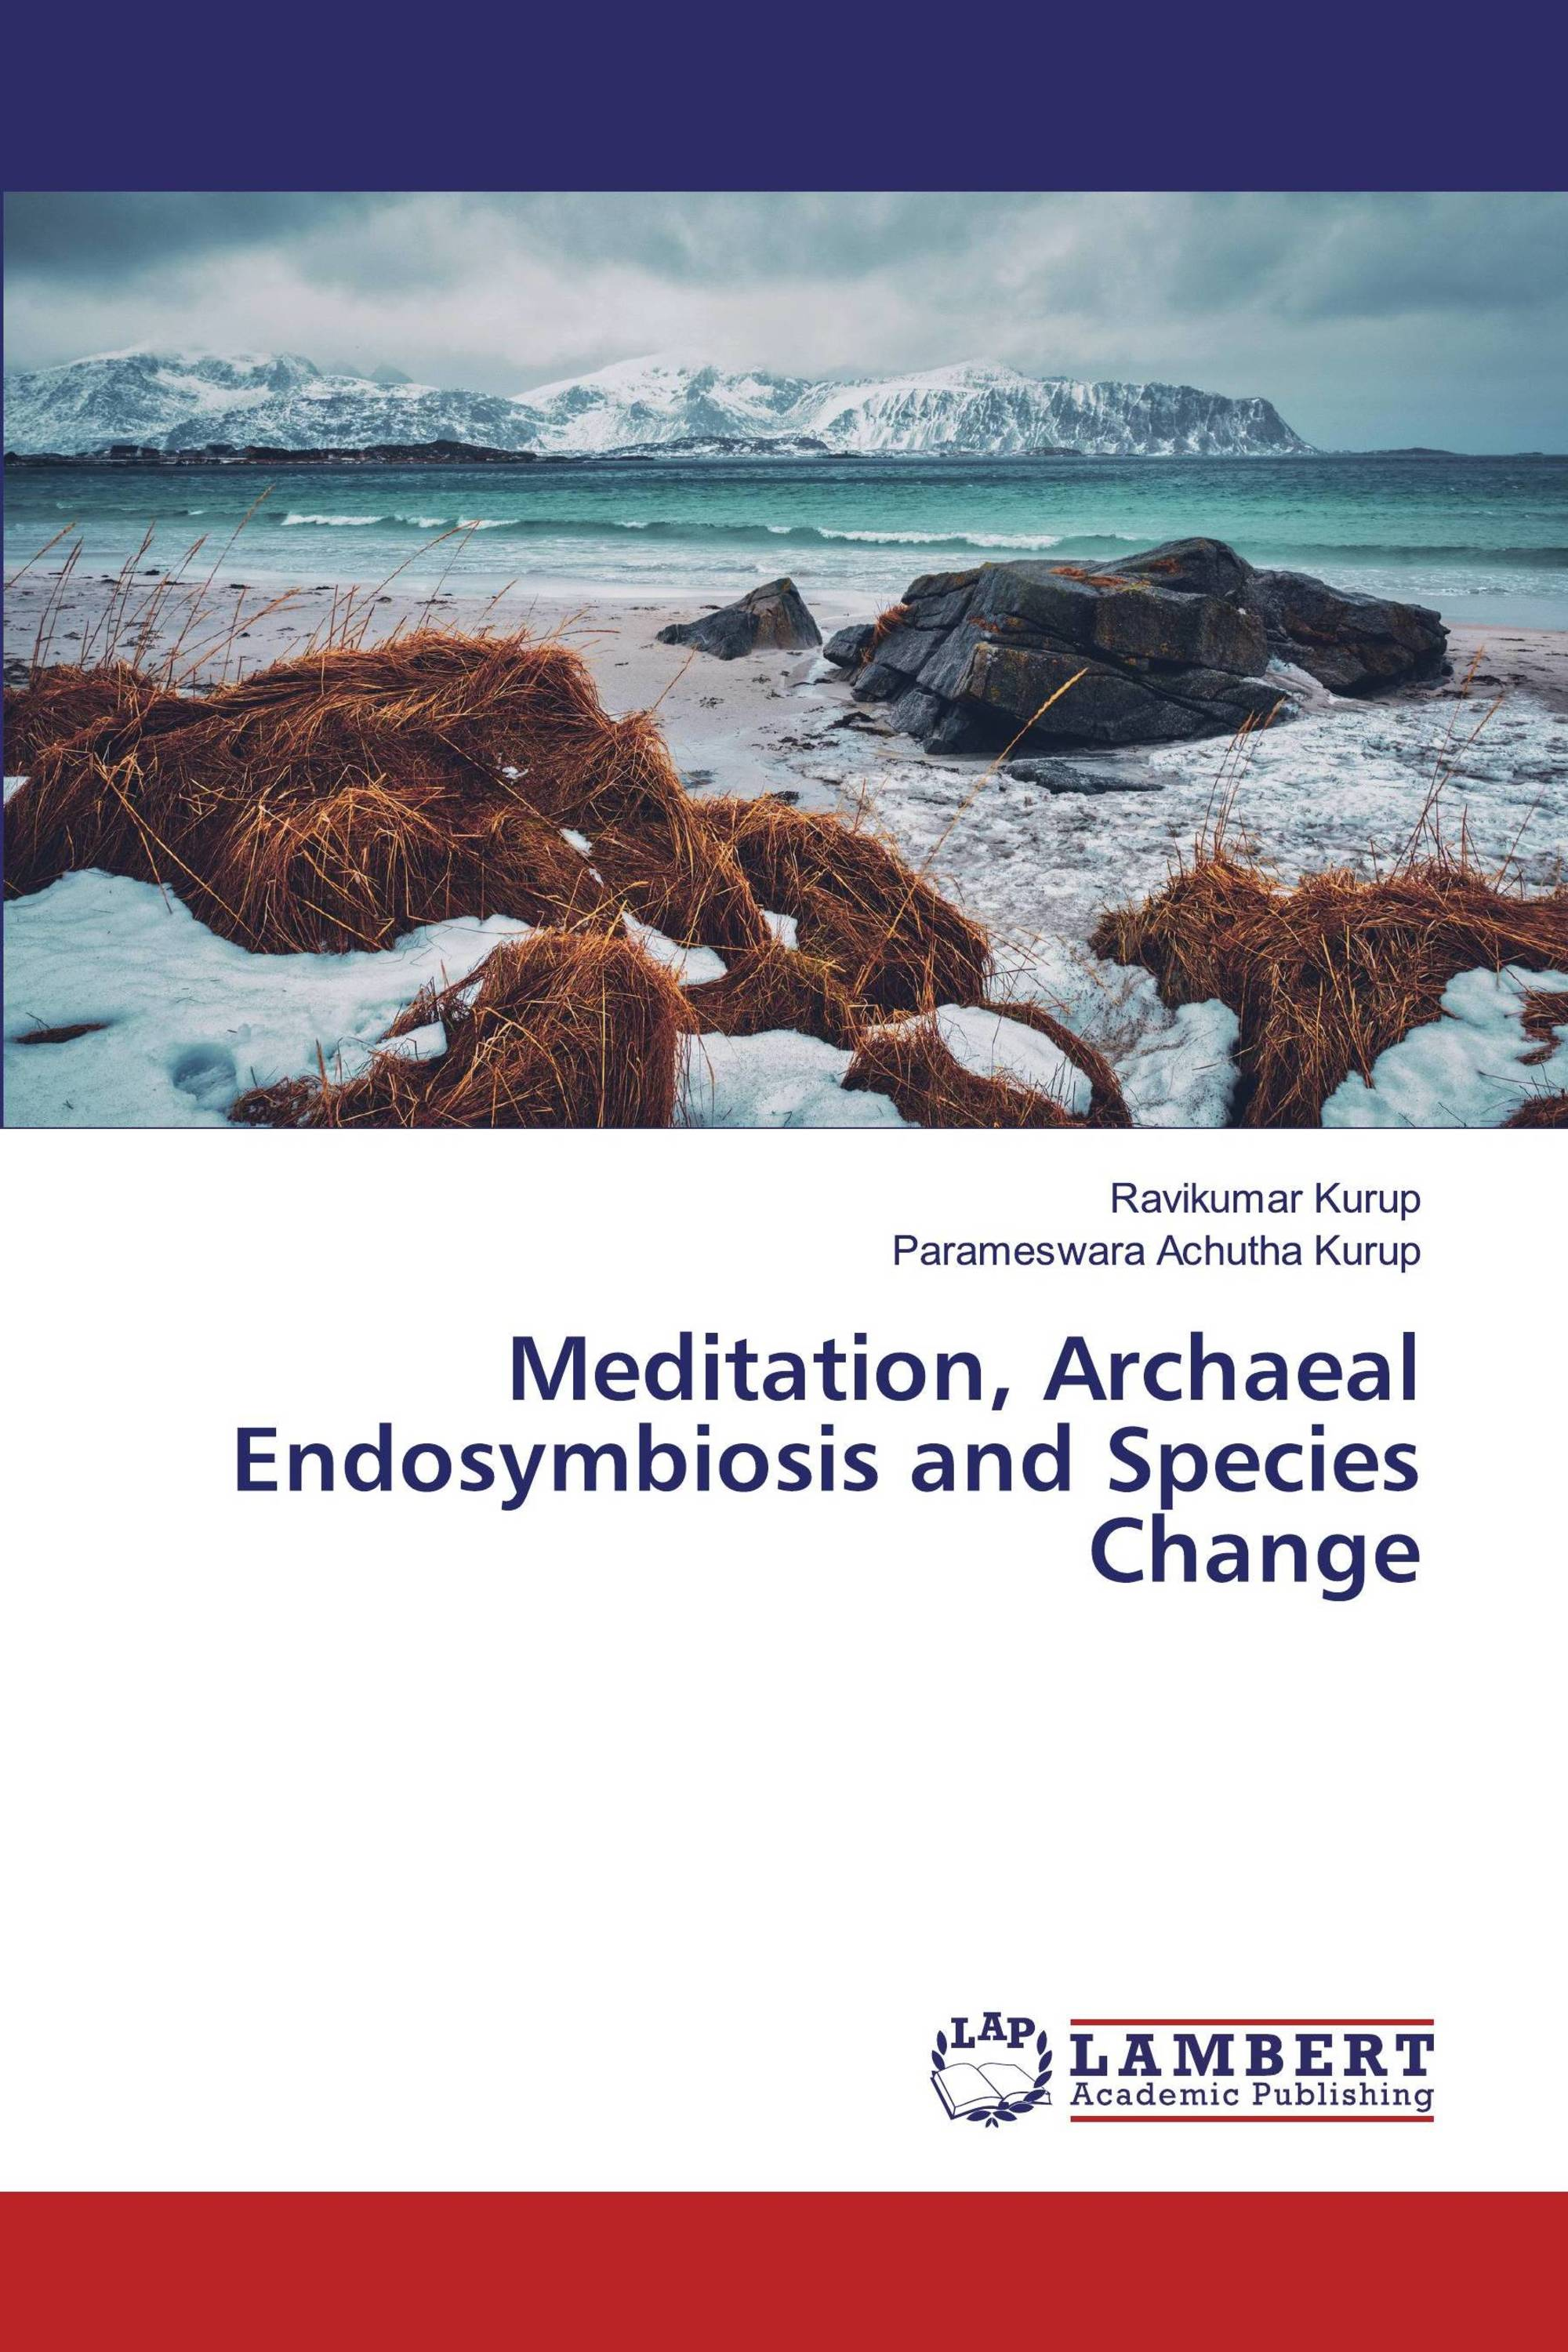 Meditation, Archaeal Endosymbiosis and Species Change